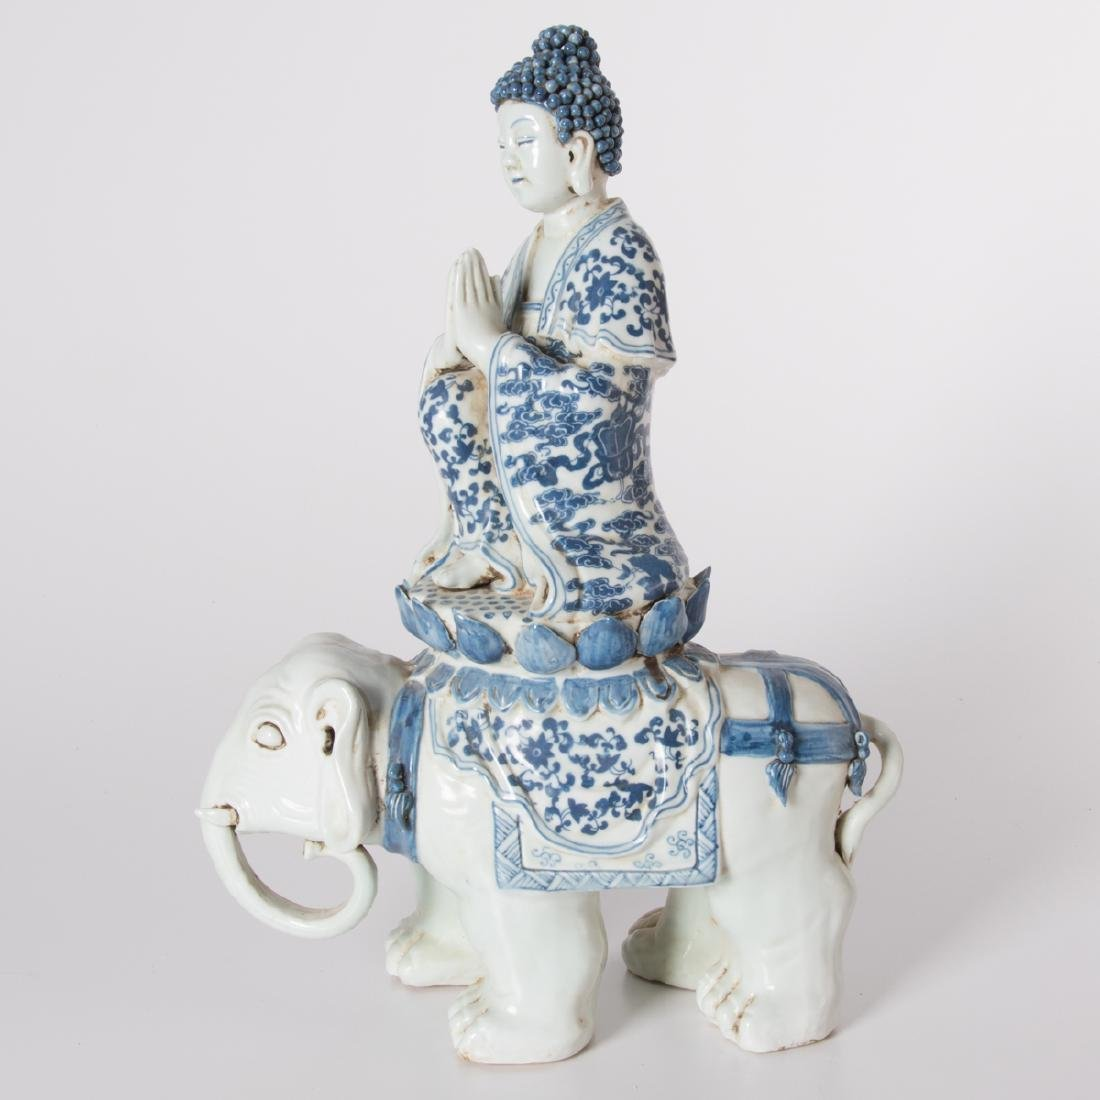 A Chinese Blue and White Porcelain Figure of Buddha on